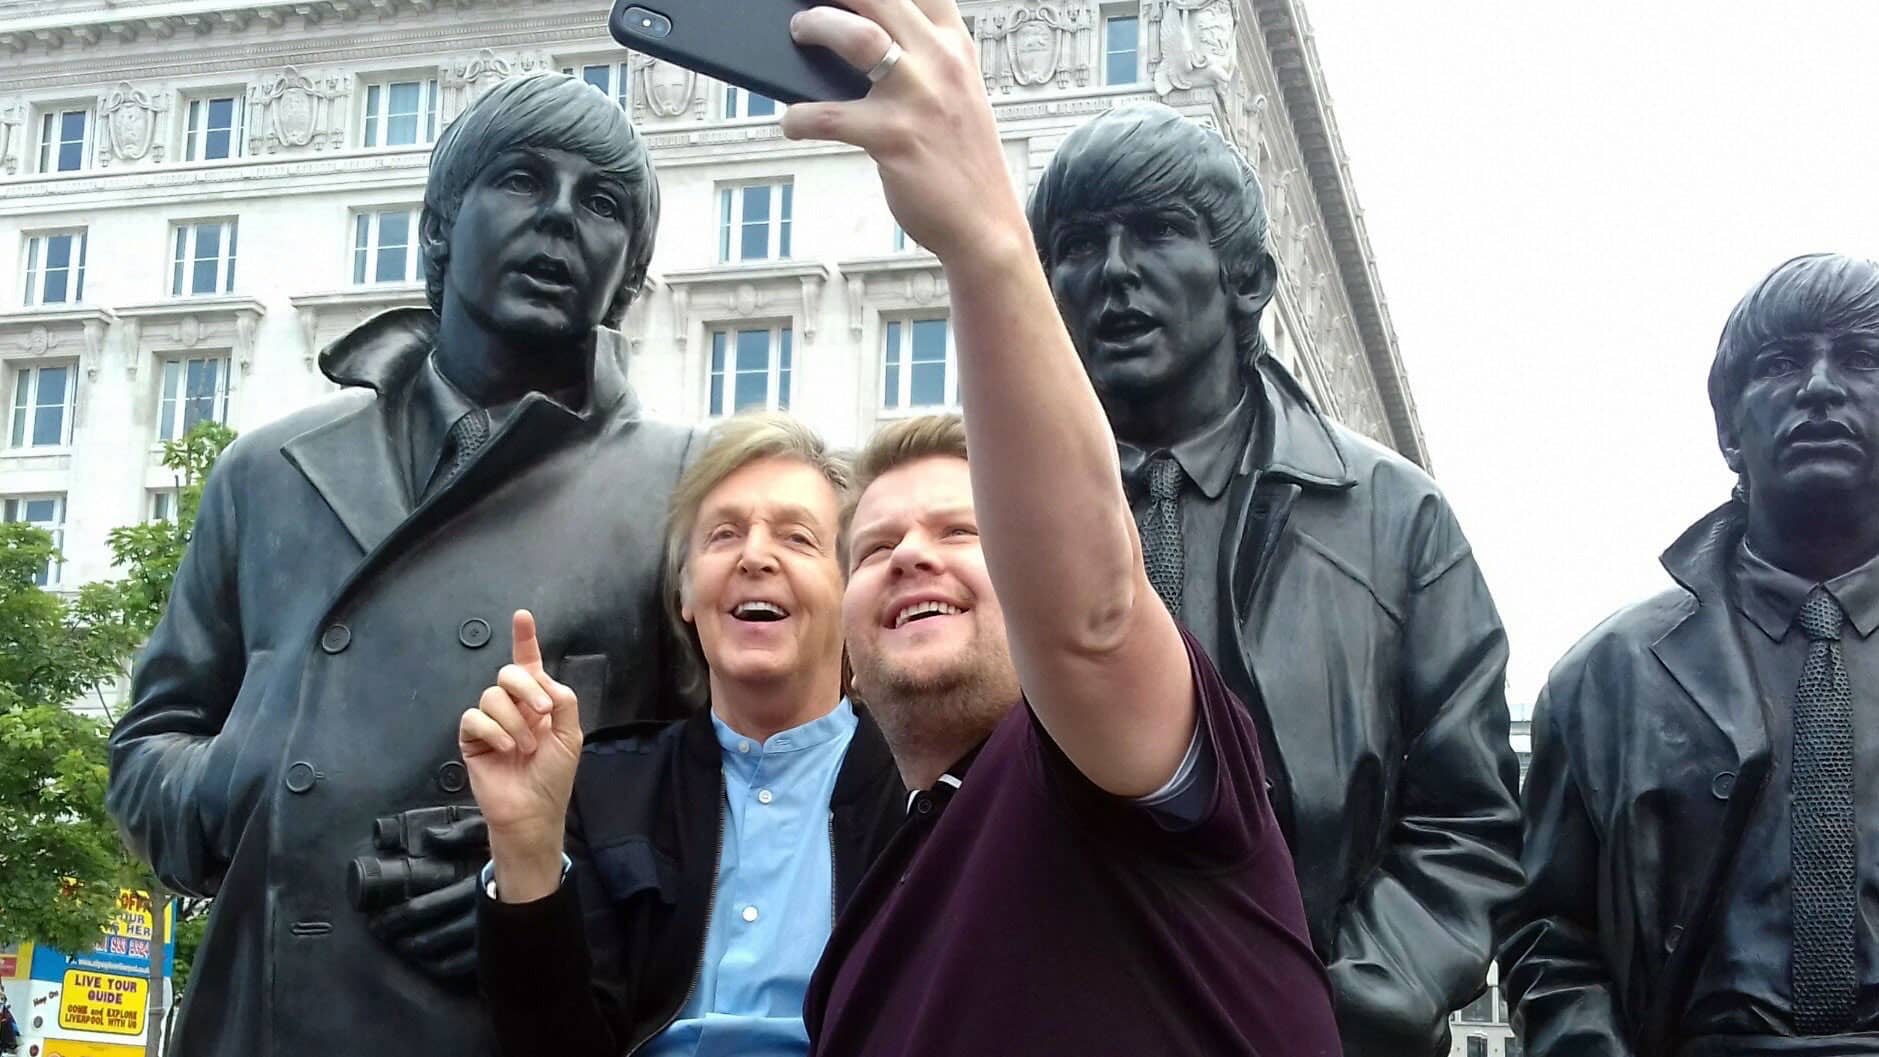 Paul McCartney Returns To Liverpool For Surprise Live Show The Beatles Bible